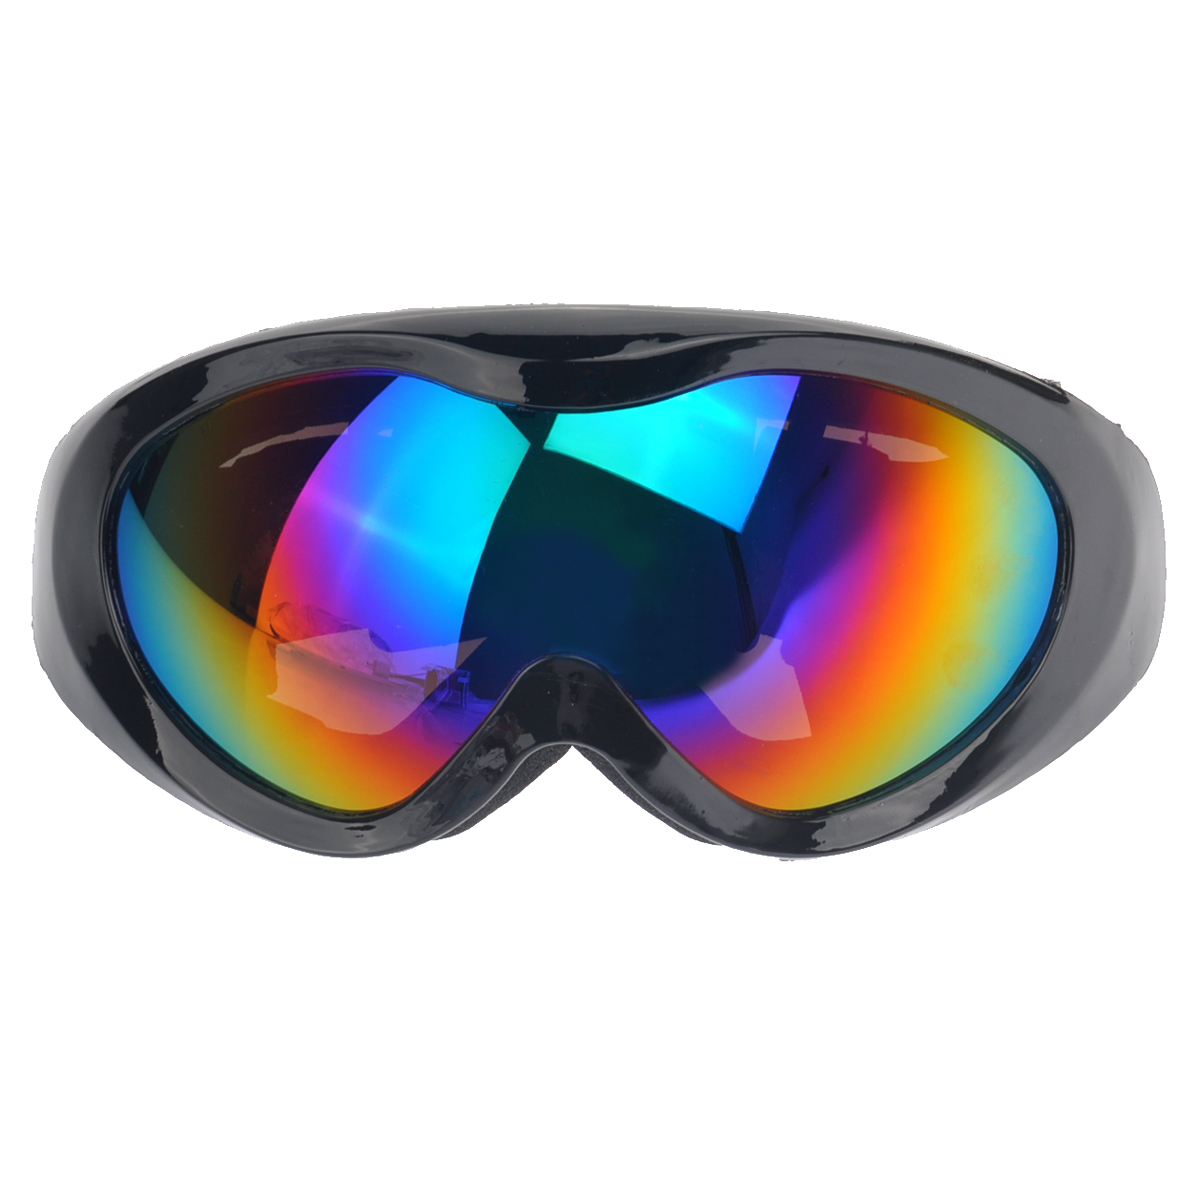 Adjustable Outdoor Sports Cycling Motorcross Skiing Unisex Windproof UV-Protection Rainbow Lens Safety Goggles Glasses... by